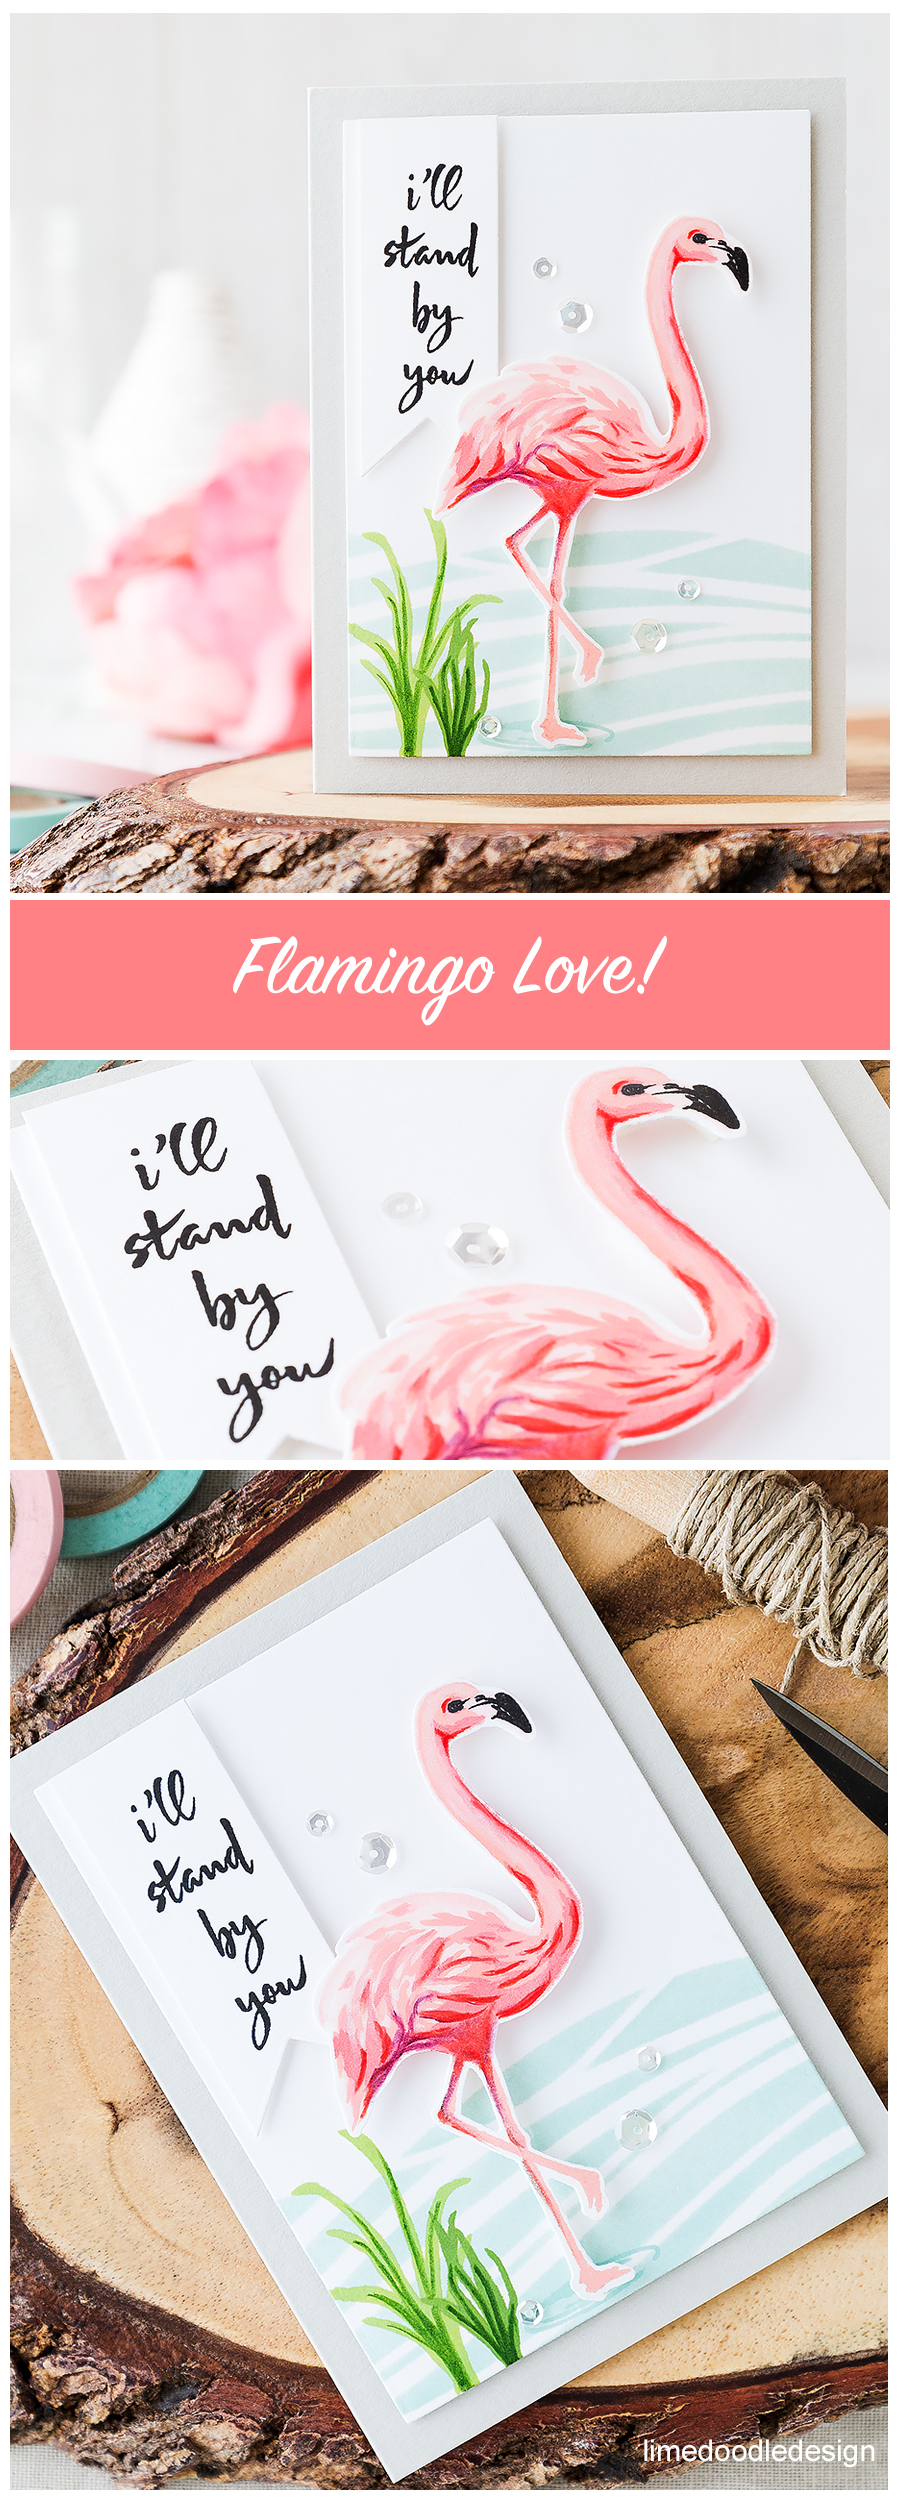 Who doesn't love flamingos?! The Hero Arts flamingo makes a stunning focal point for this card. Find out more by clicking on the following link: http://limedoodledesign.com/2016/06/who-doesnt-love-flamingos/